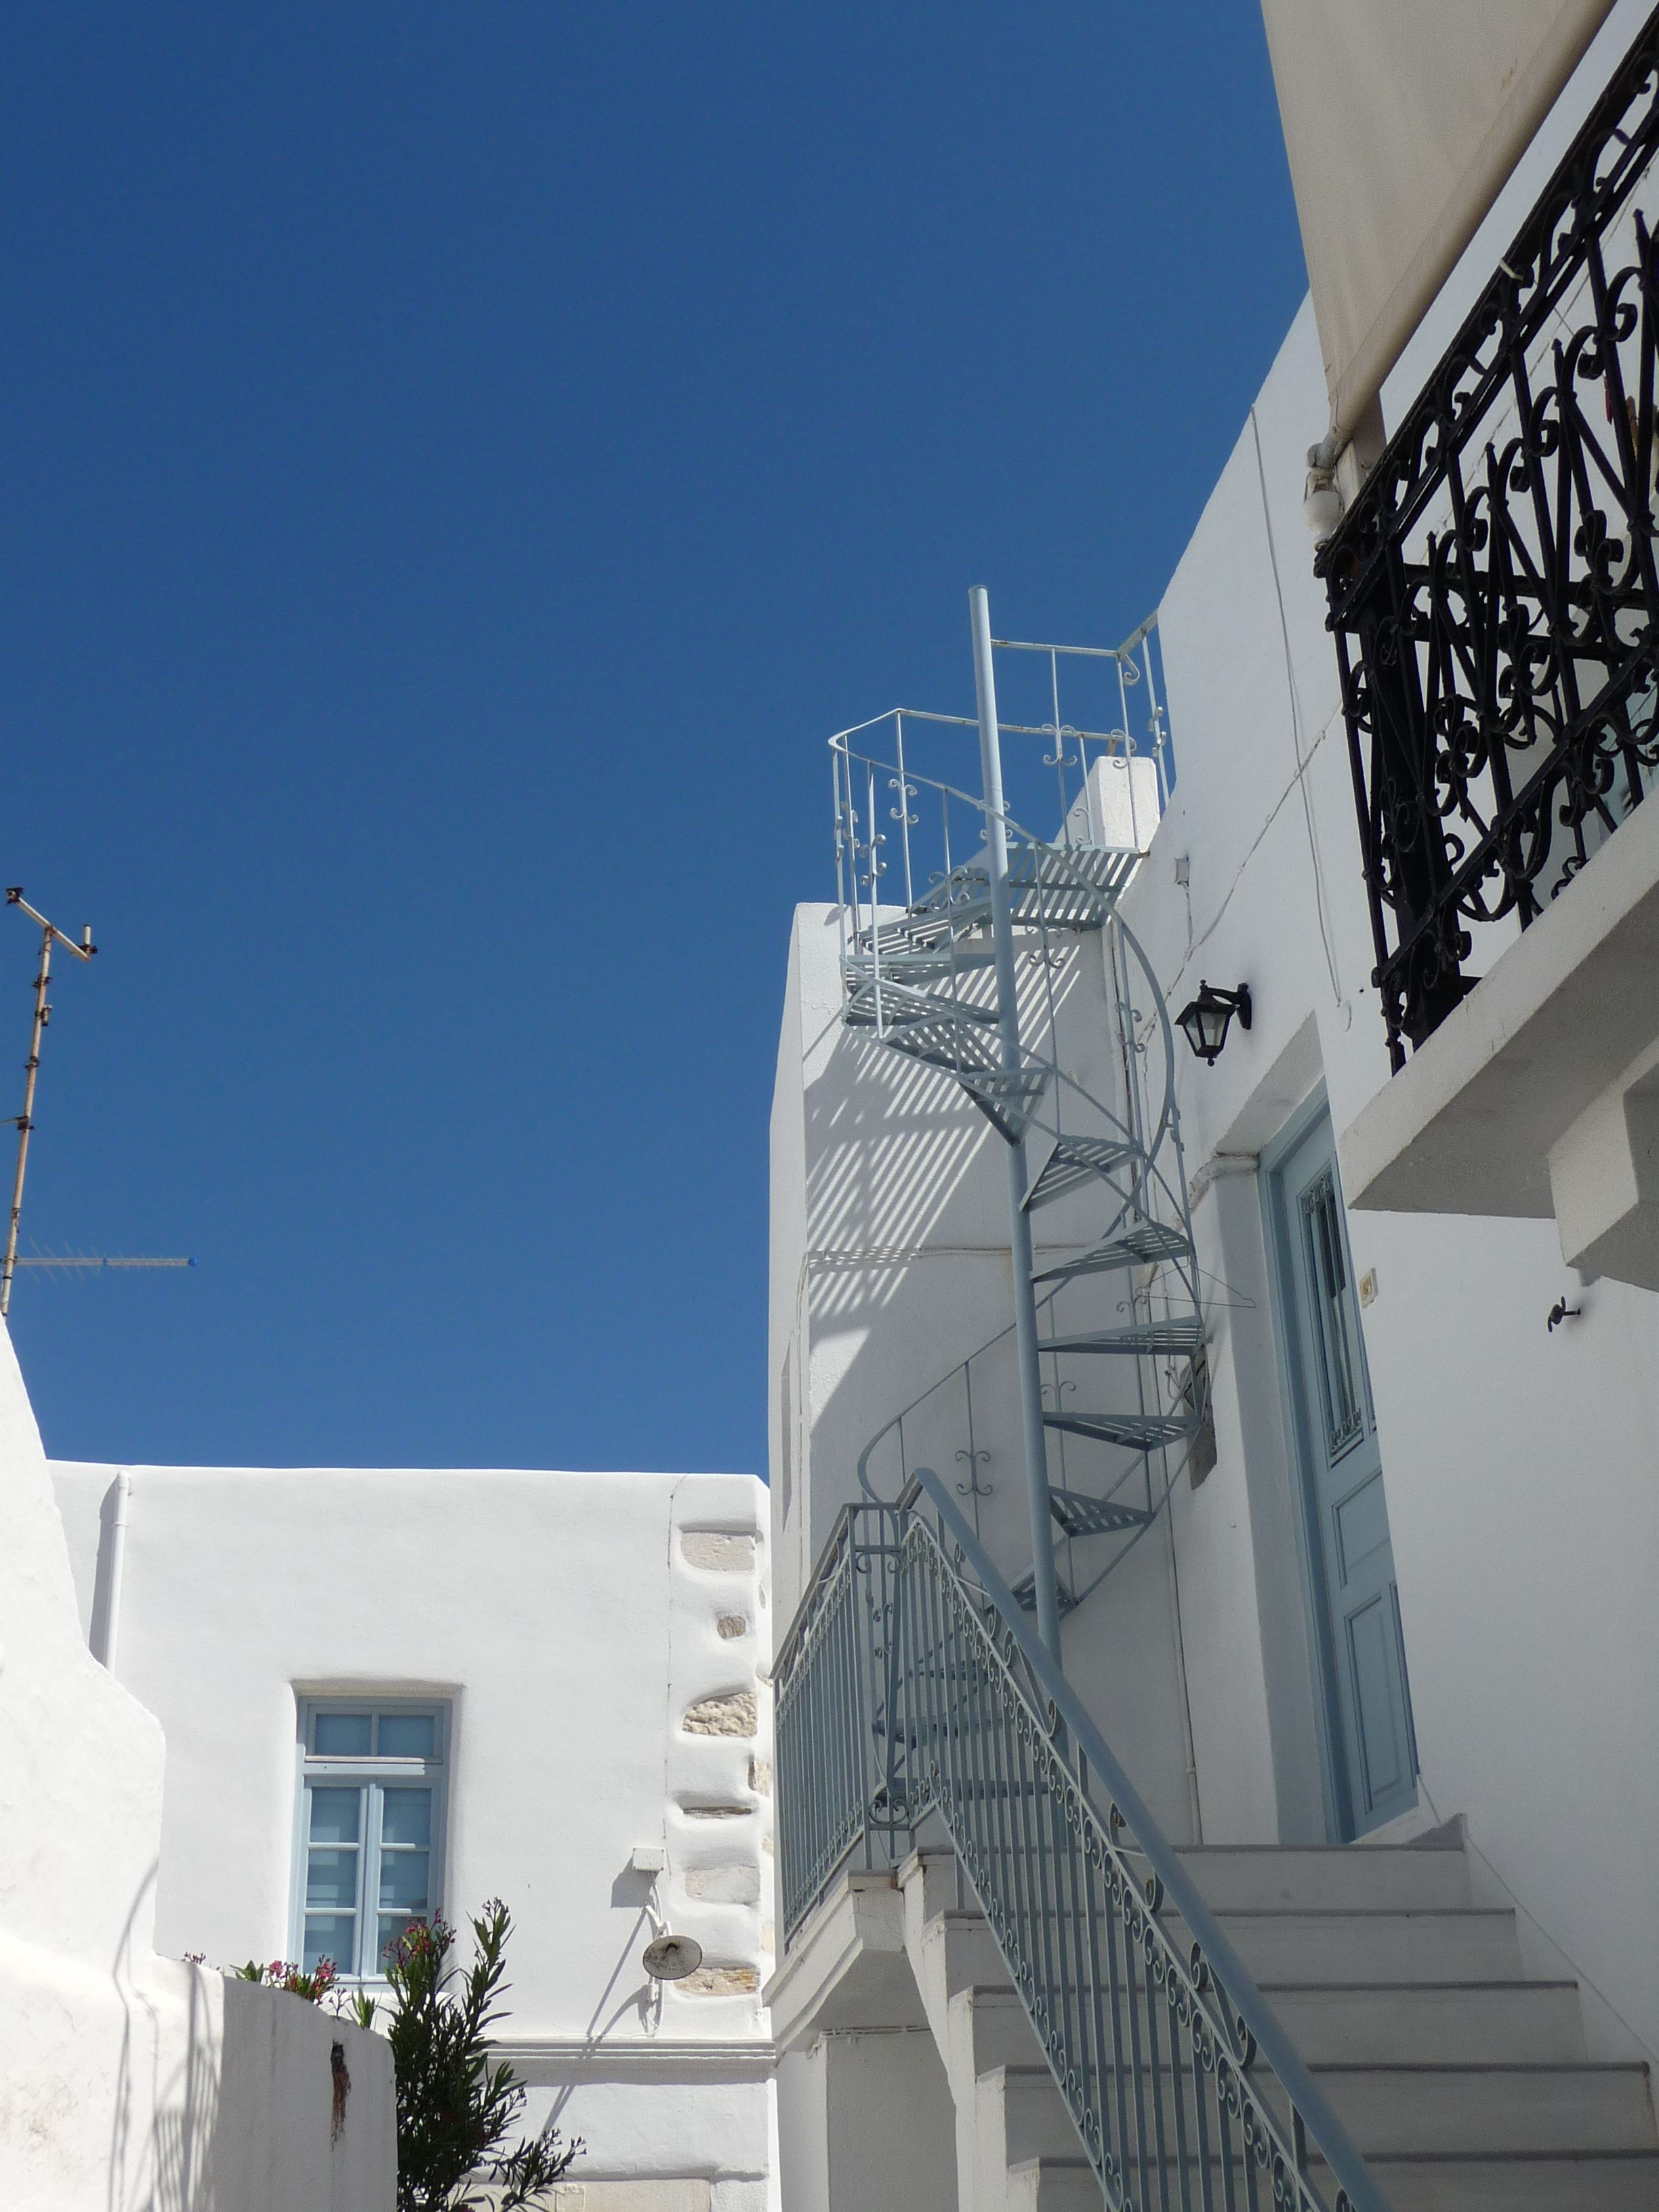 Stairway to heaven  Paros Island, Greece